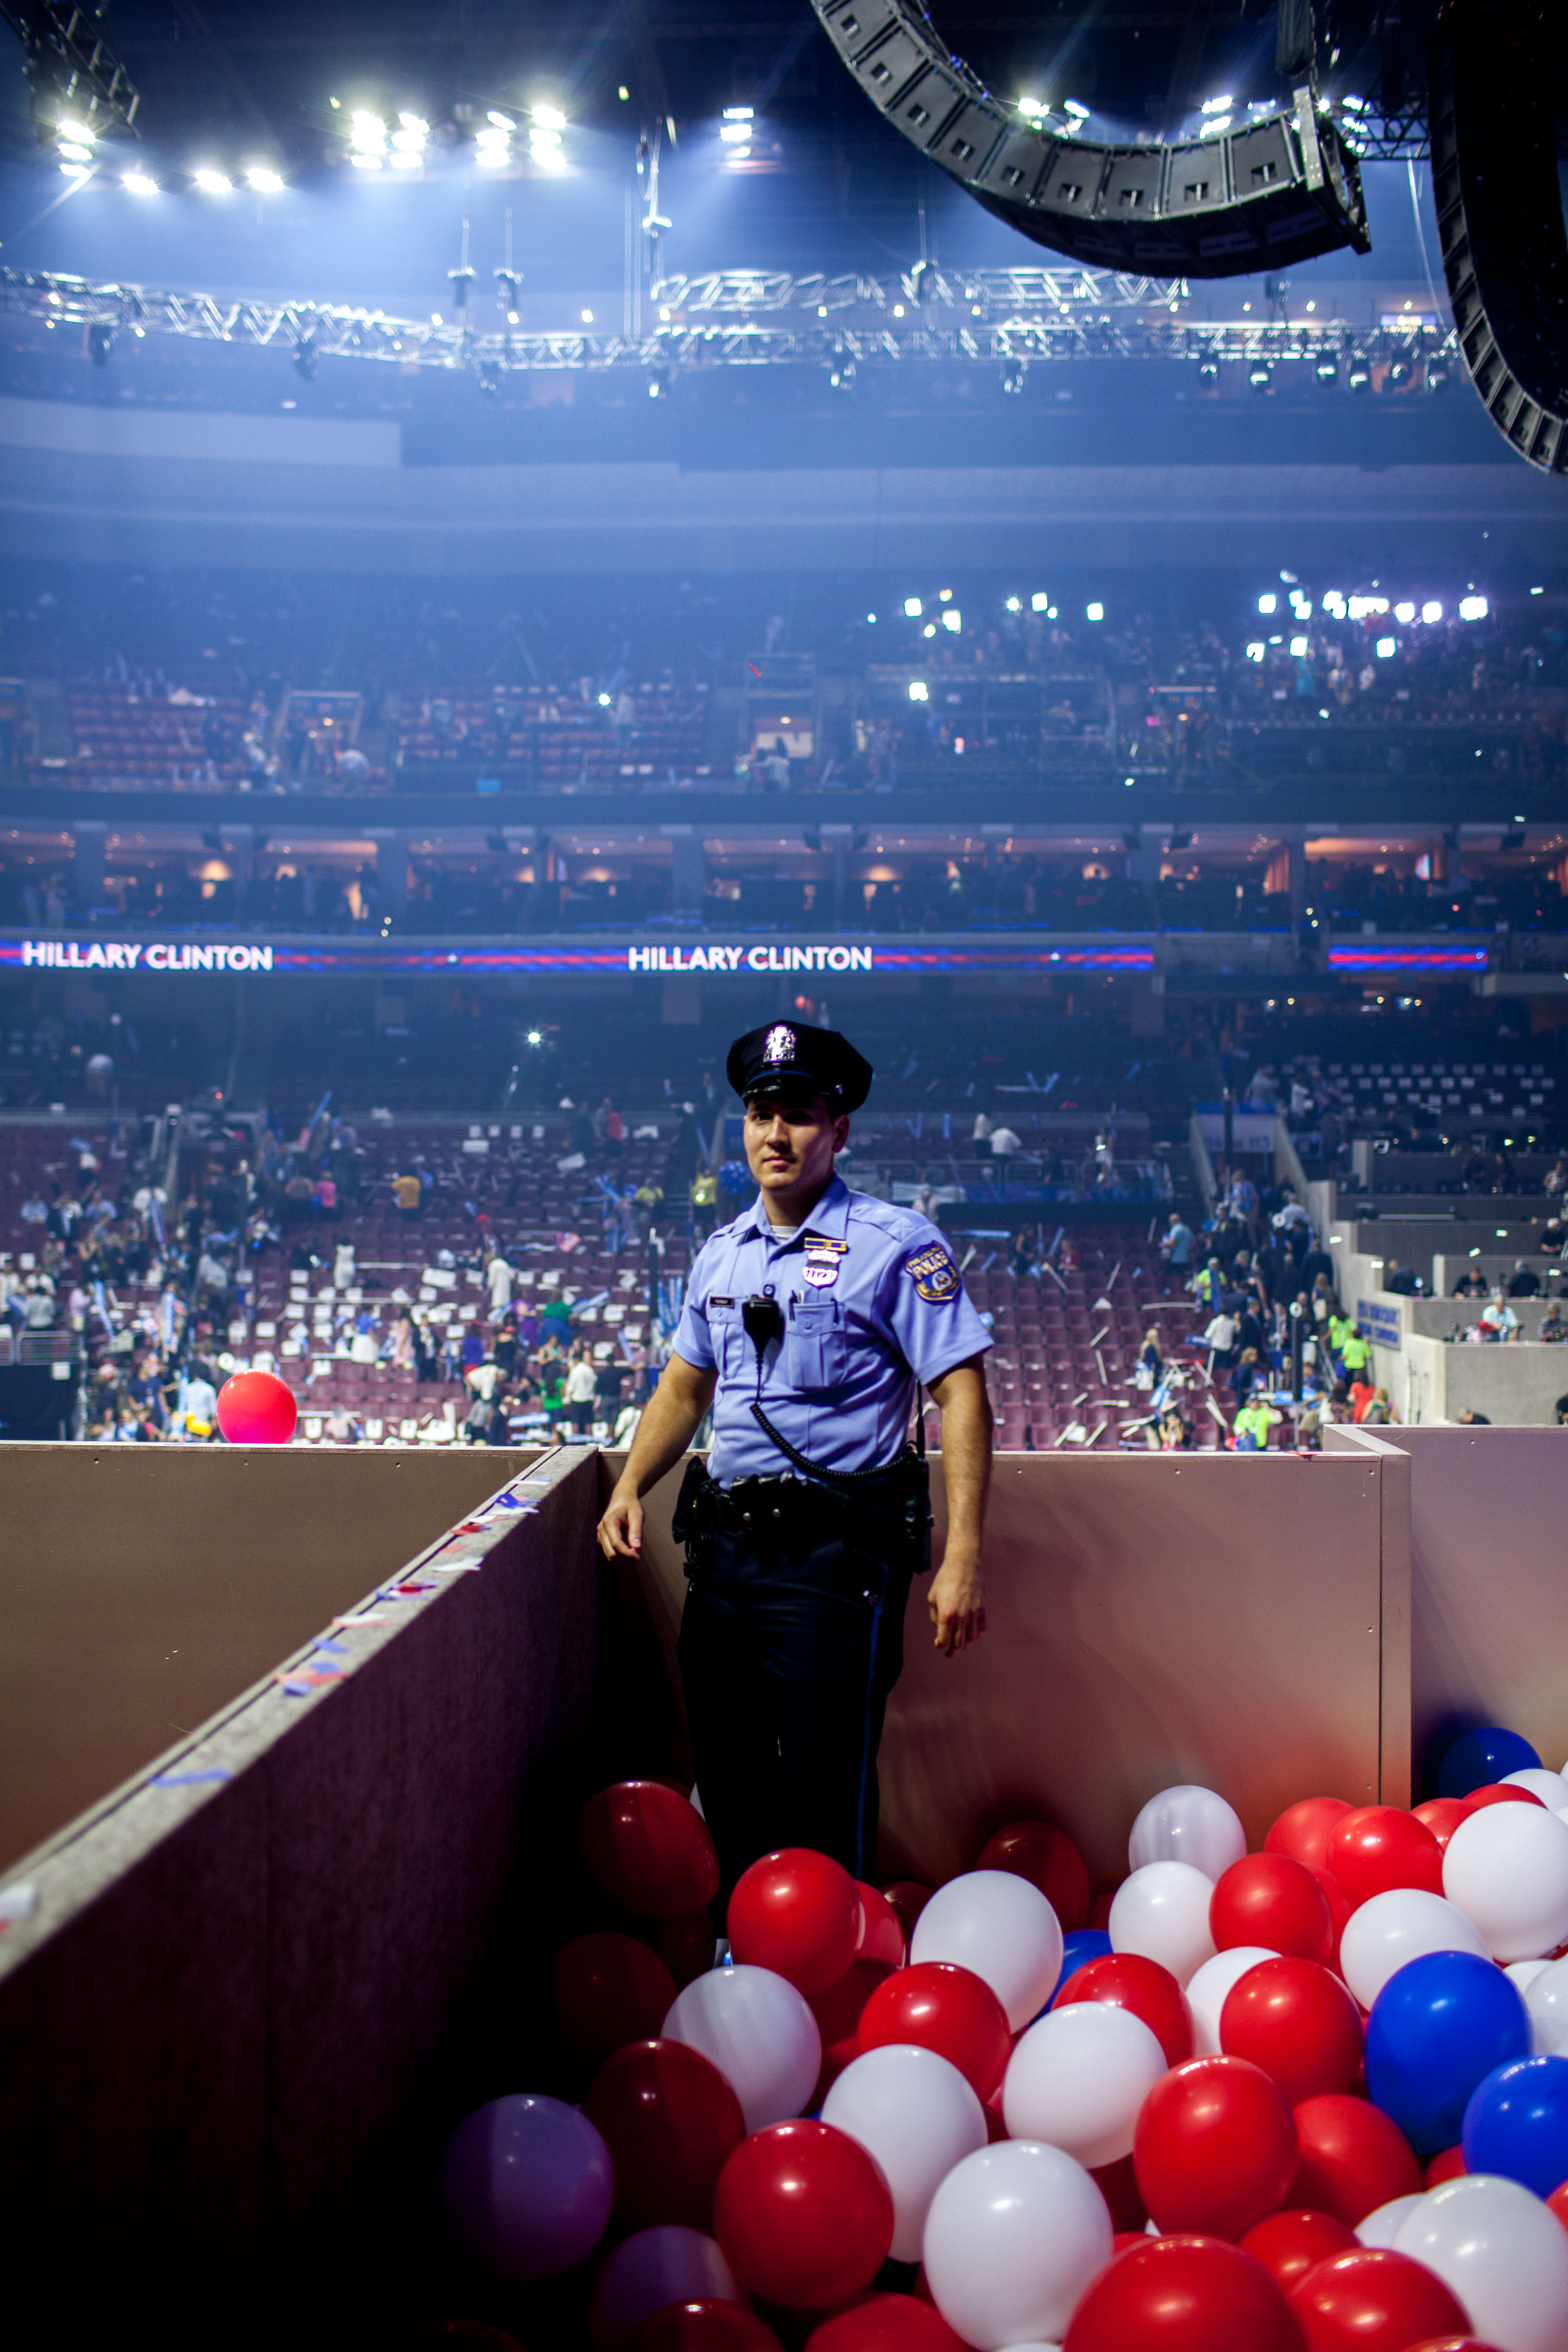 Security backstage on the fourth day of the Democratic National Convention at the Wells Fargo Center in Philadelphia, Pennsylvania July 28, 2016.